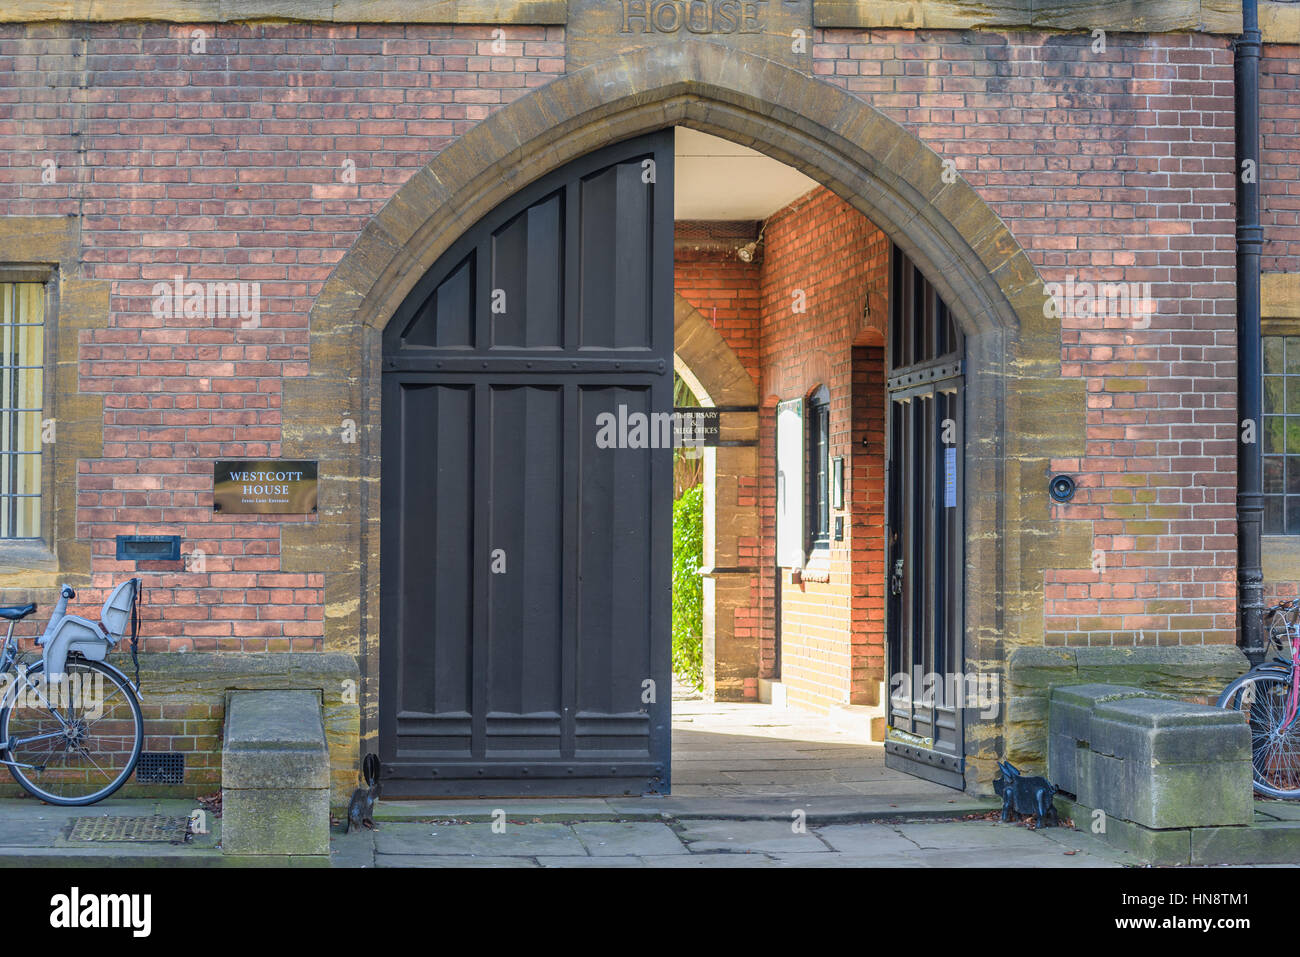 Westcott House, Cambridge, England. - Stock Image